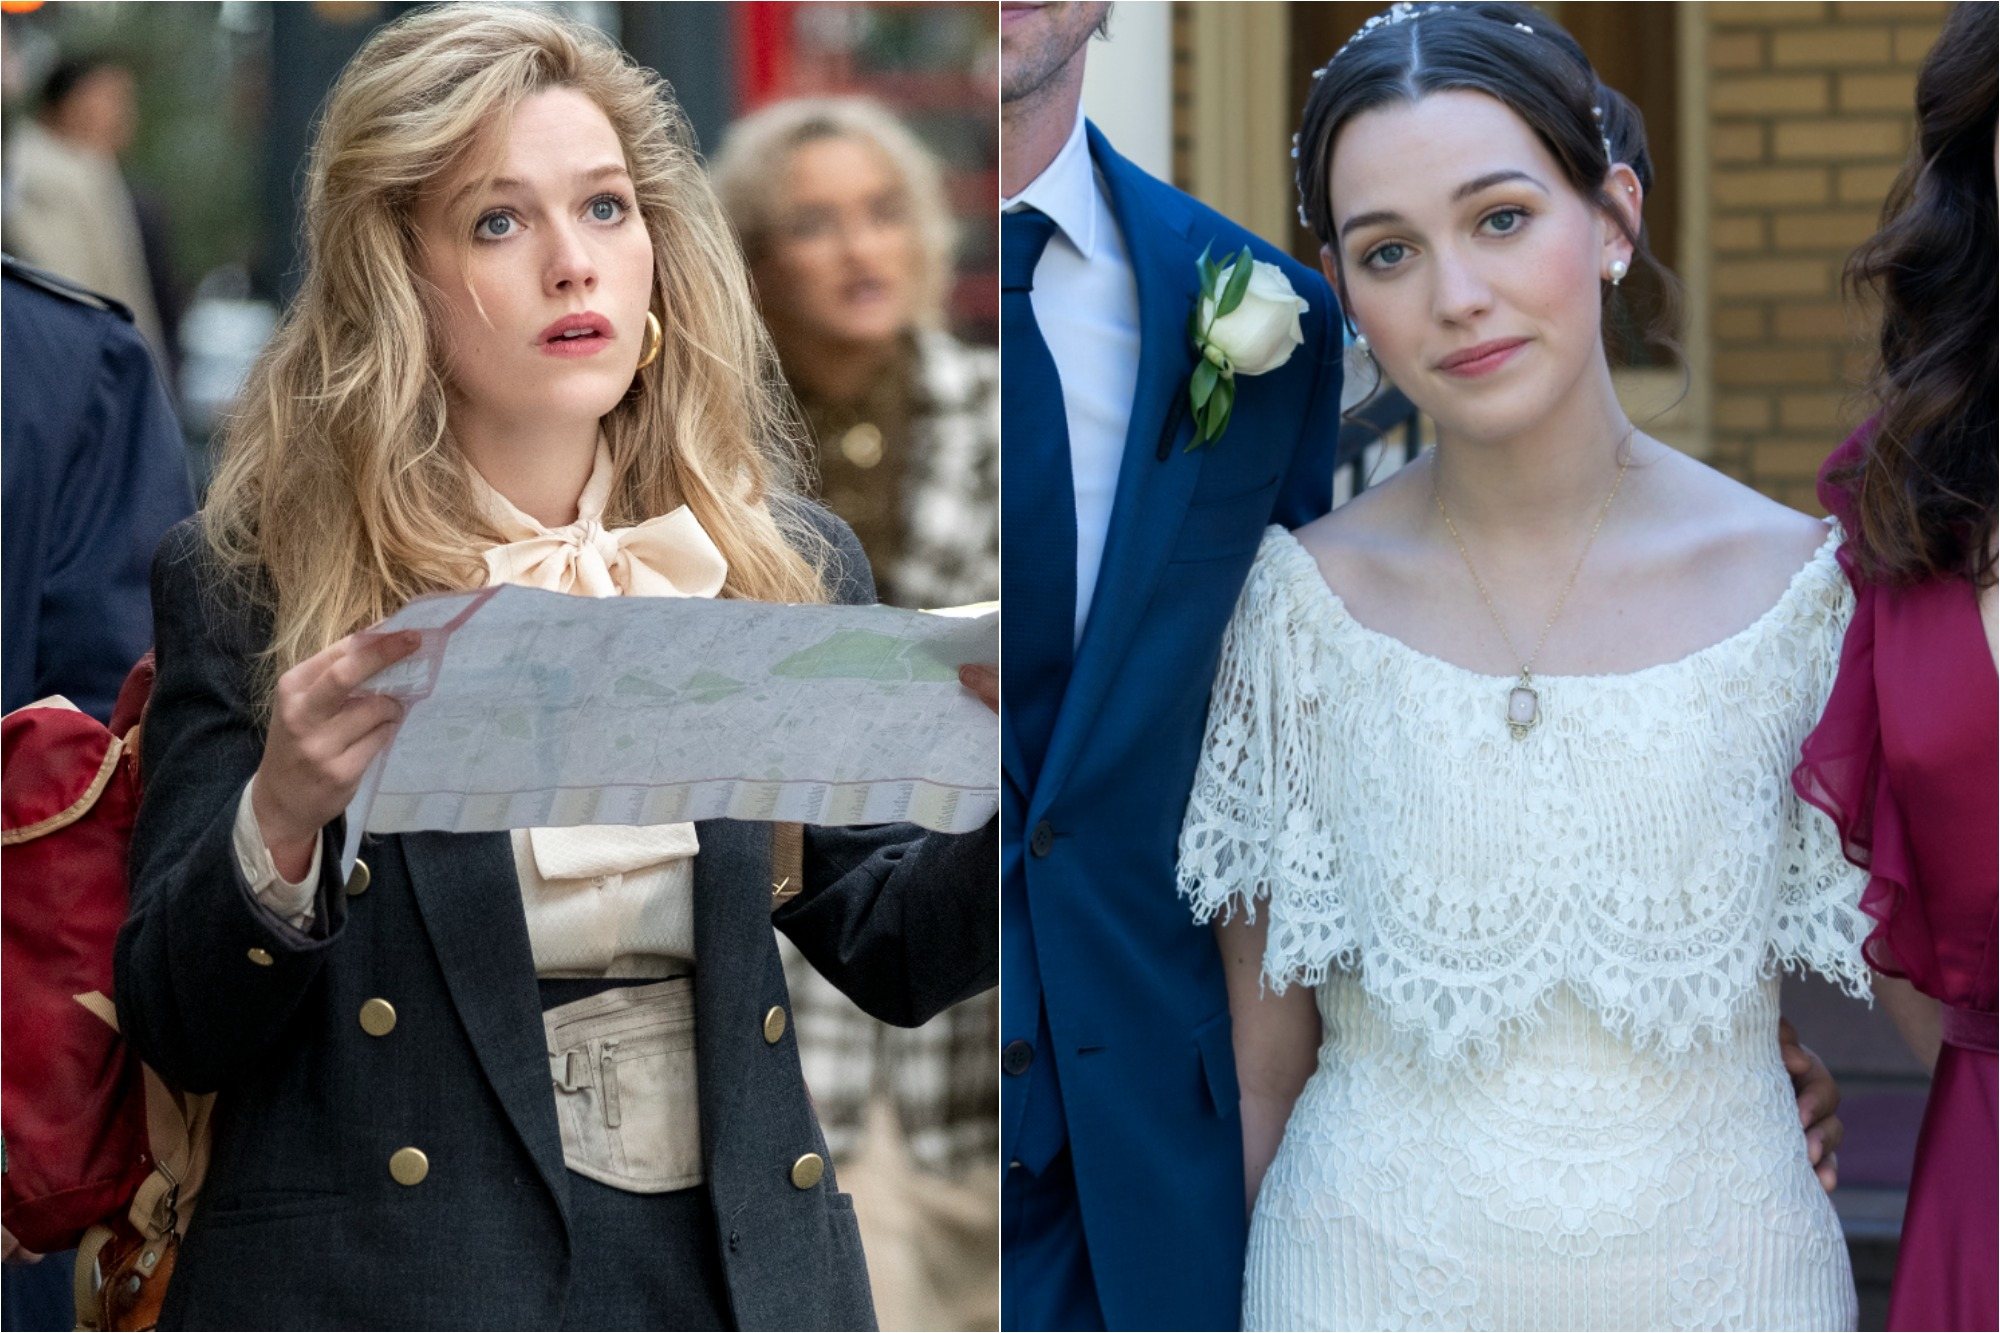 (L) Victoria Pedretti as Dani in 'THE HAUNTING OF BLY MANOR' / (R) Pedretti as Nell in 'THE HAUNTING OF HILL HOUSE'